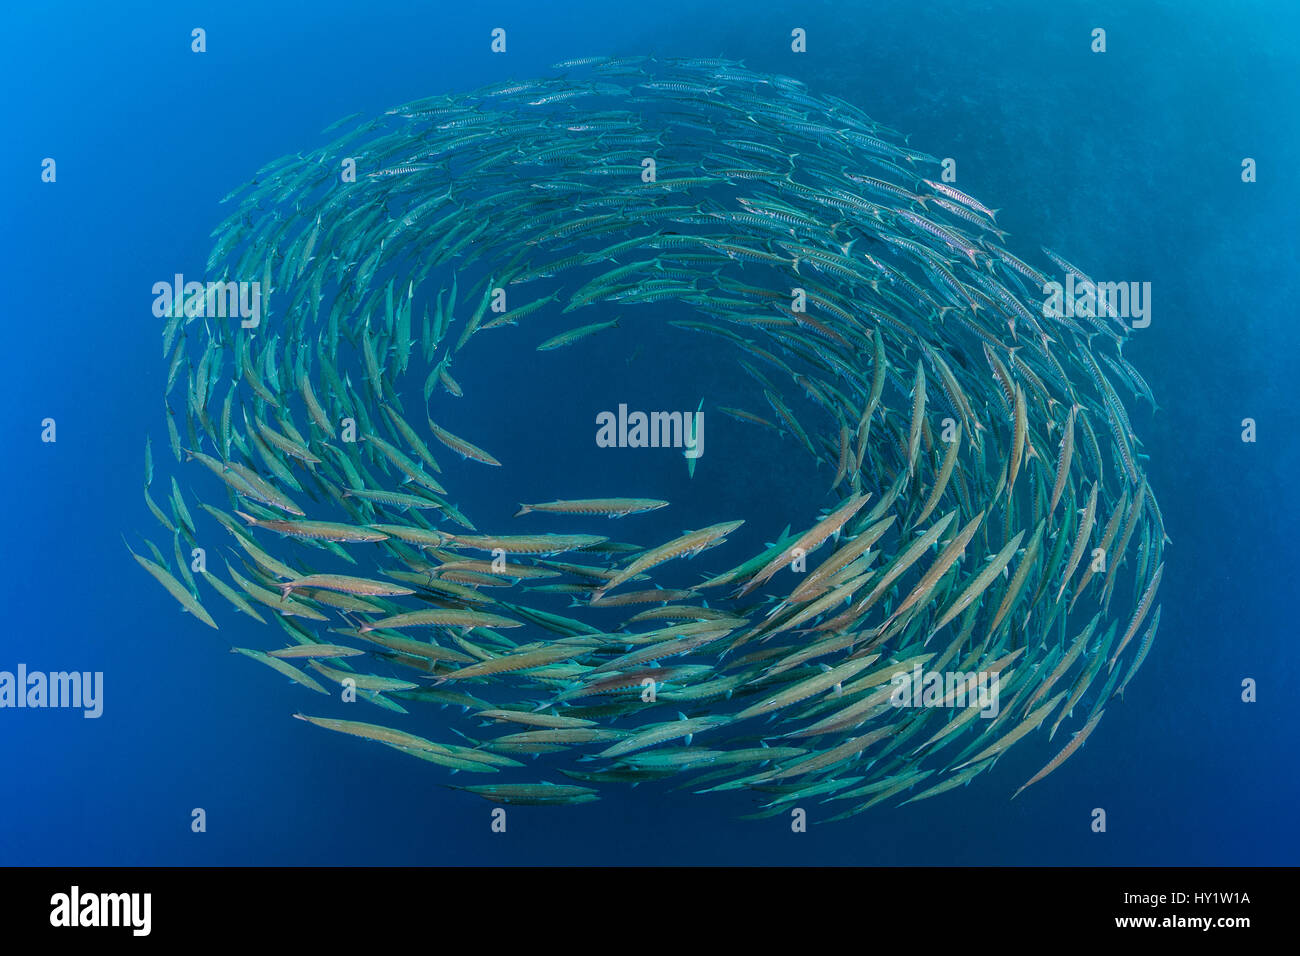 School of Blackfin barracuda (Sphyraena qenie) forming  circle in open water at Shark Reef, Ras Mohammed Marine - Stock Image